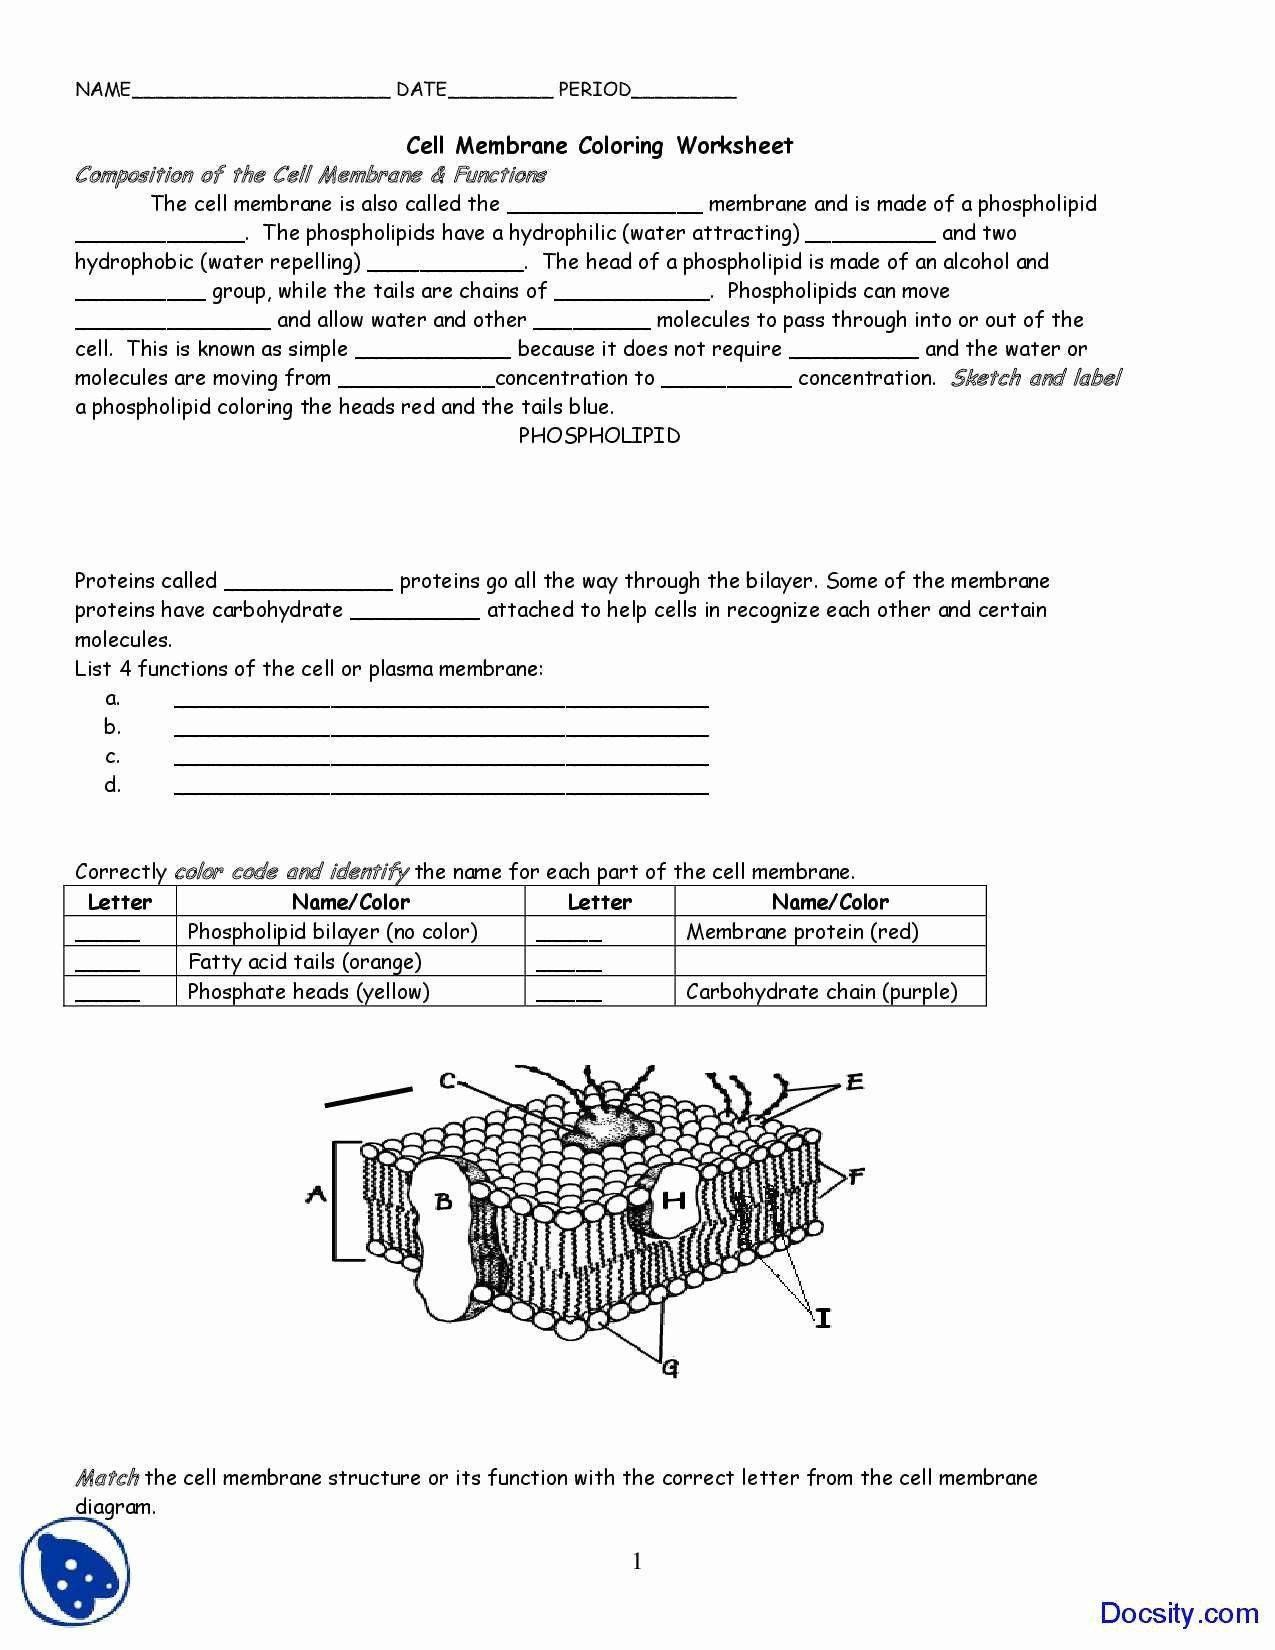 Cell Membrane Coloring Worksheet Luxury Cell Membrane